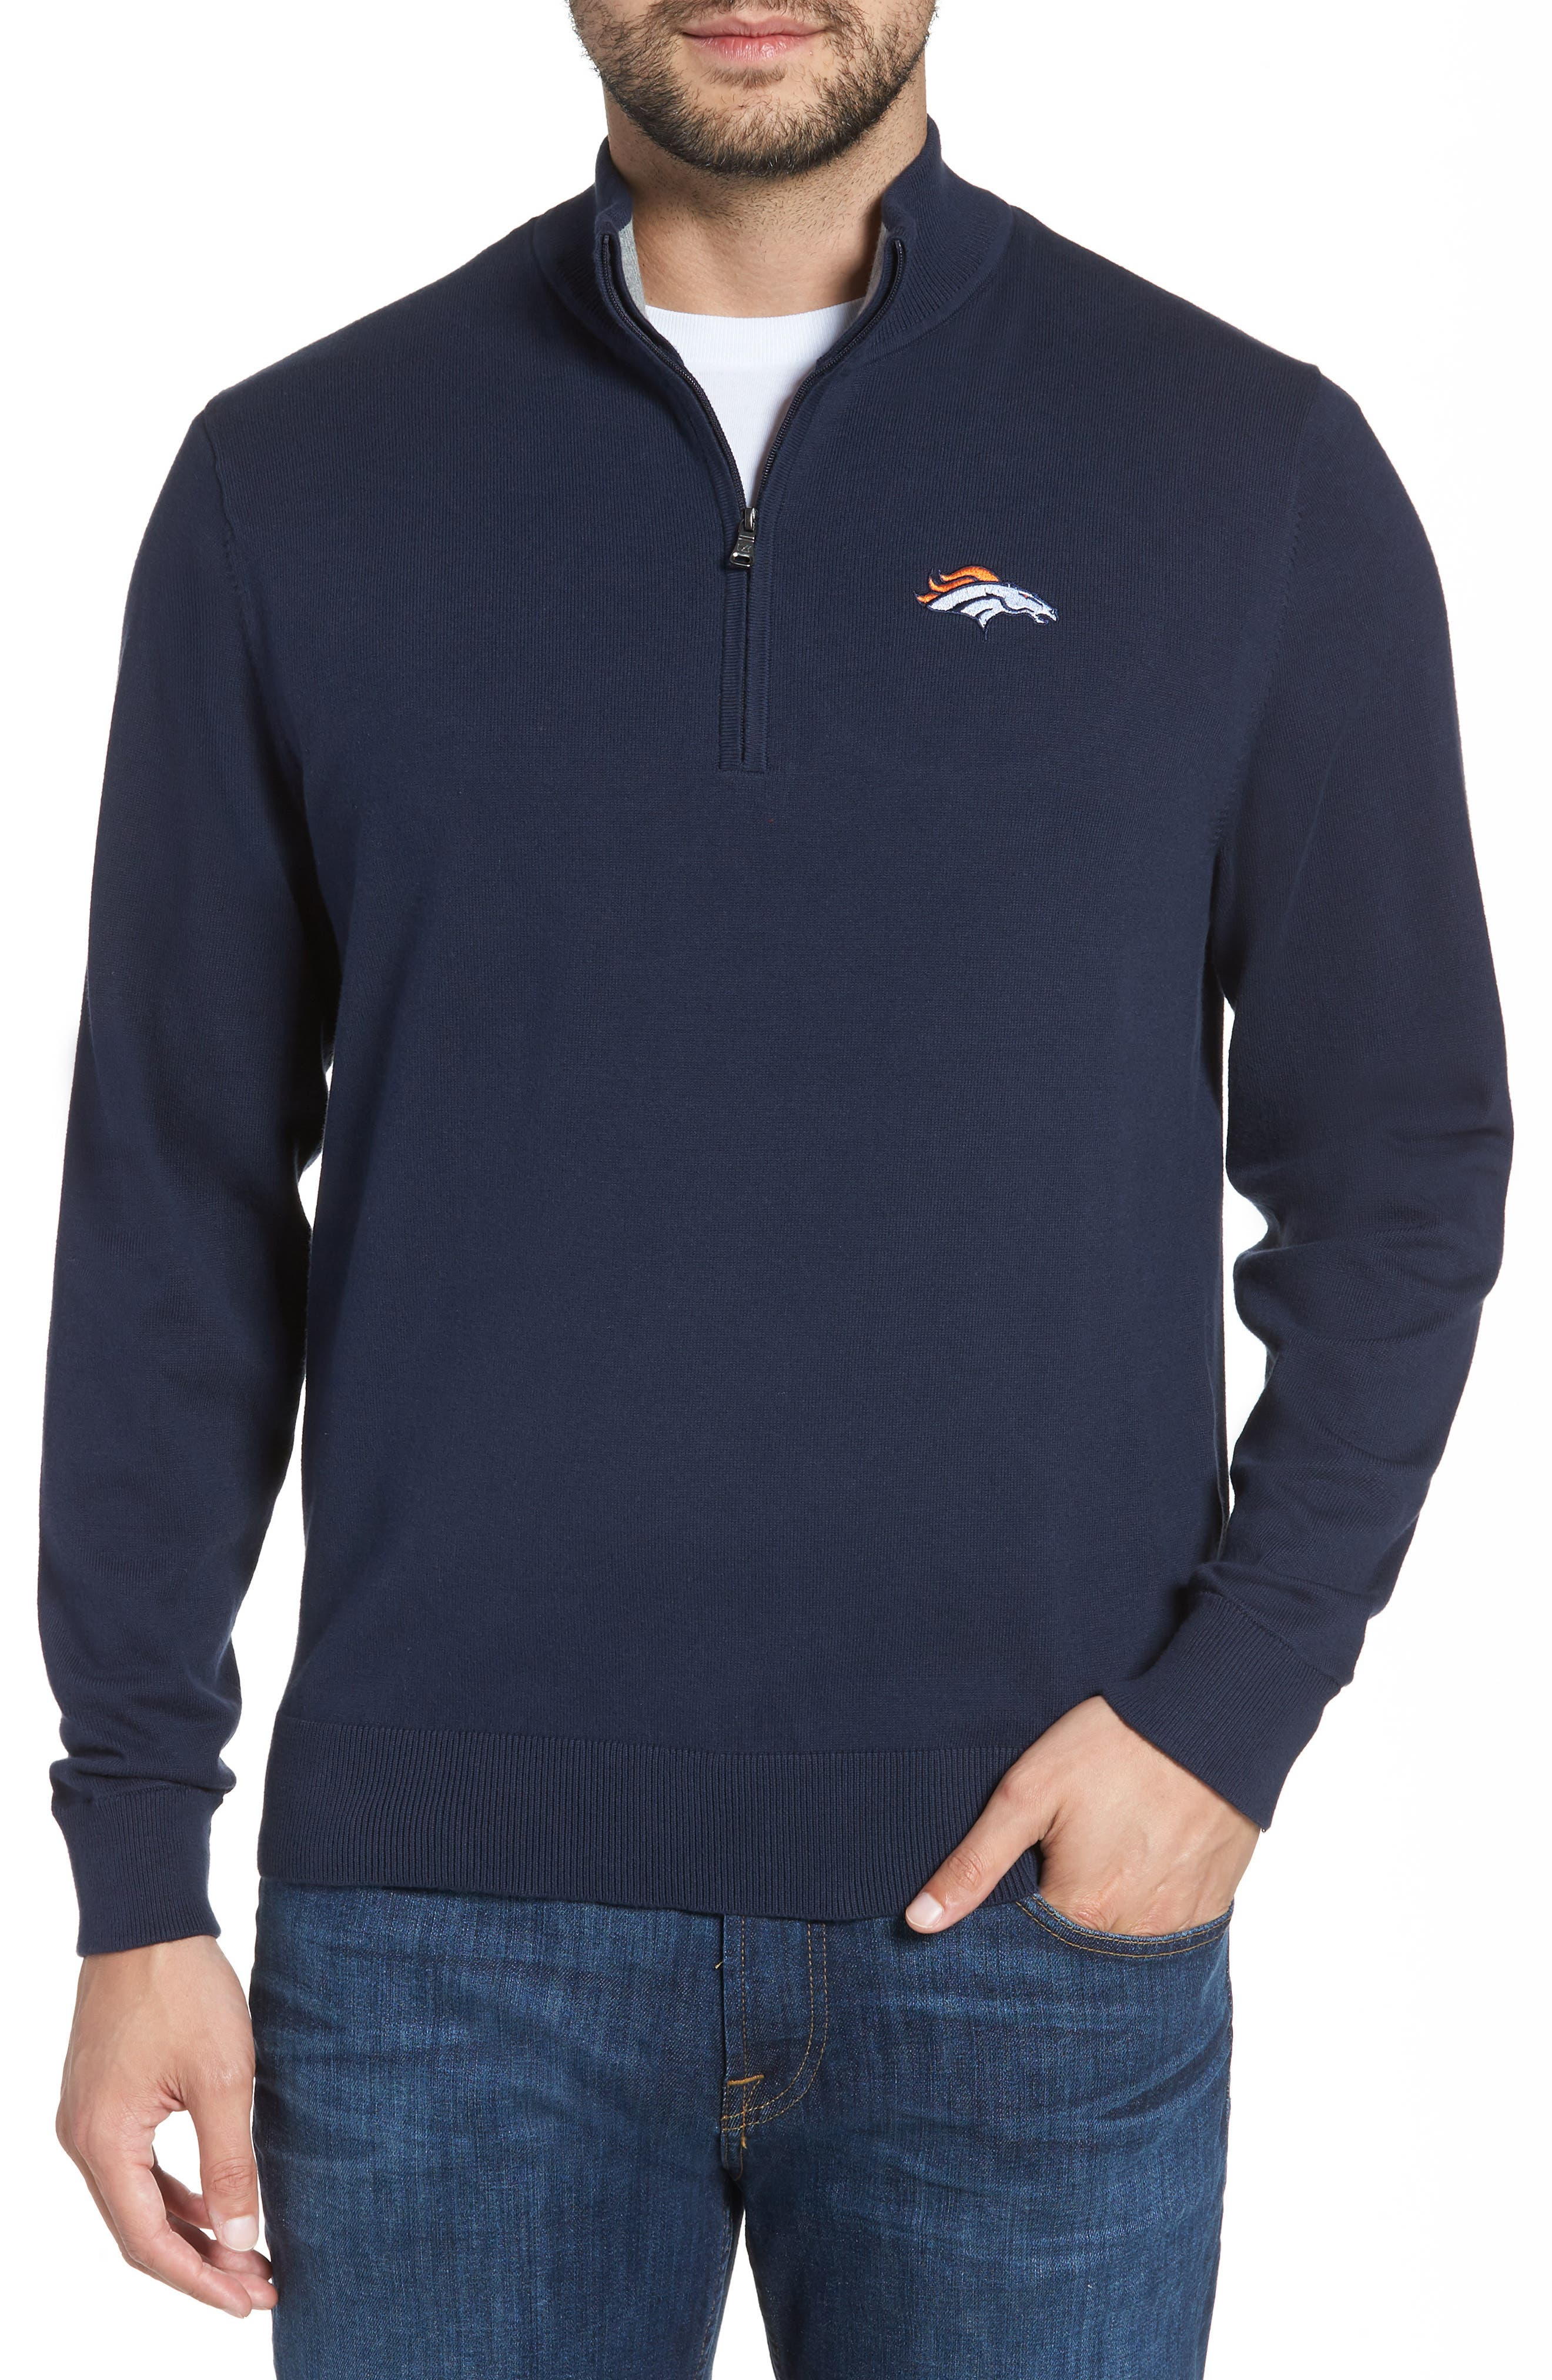 Look sharp from the office to the stadium in a mock-neck sweater that makes a handsome layering piece for brisk days. The lightweight jersey knit is reinforced at the collar and cuffs with double-layer ribbing for warmth and contrast. Style Name: Cutter & Buck Denver Broncos - Lakemont Regular Fit Quarter Zip Sweater. Style Number: 5631198. Available in stores.